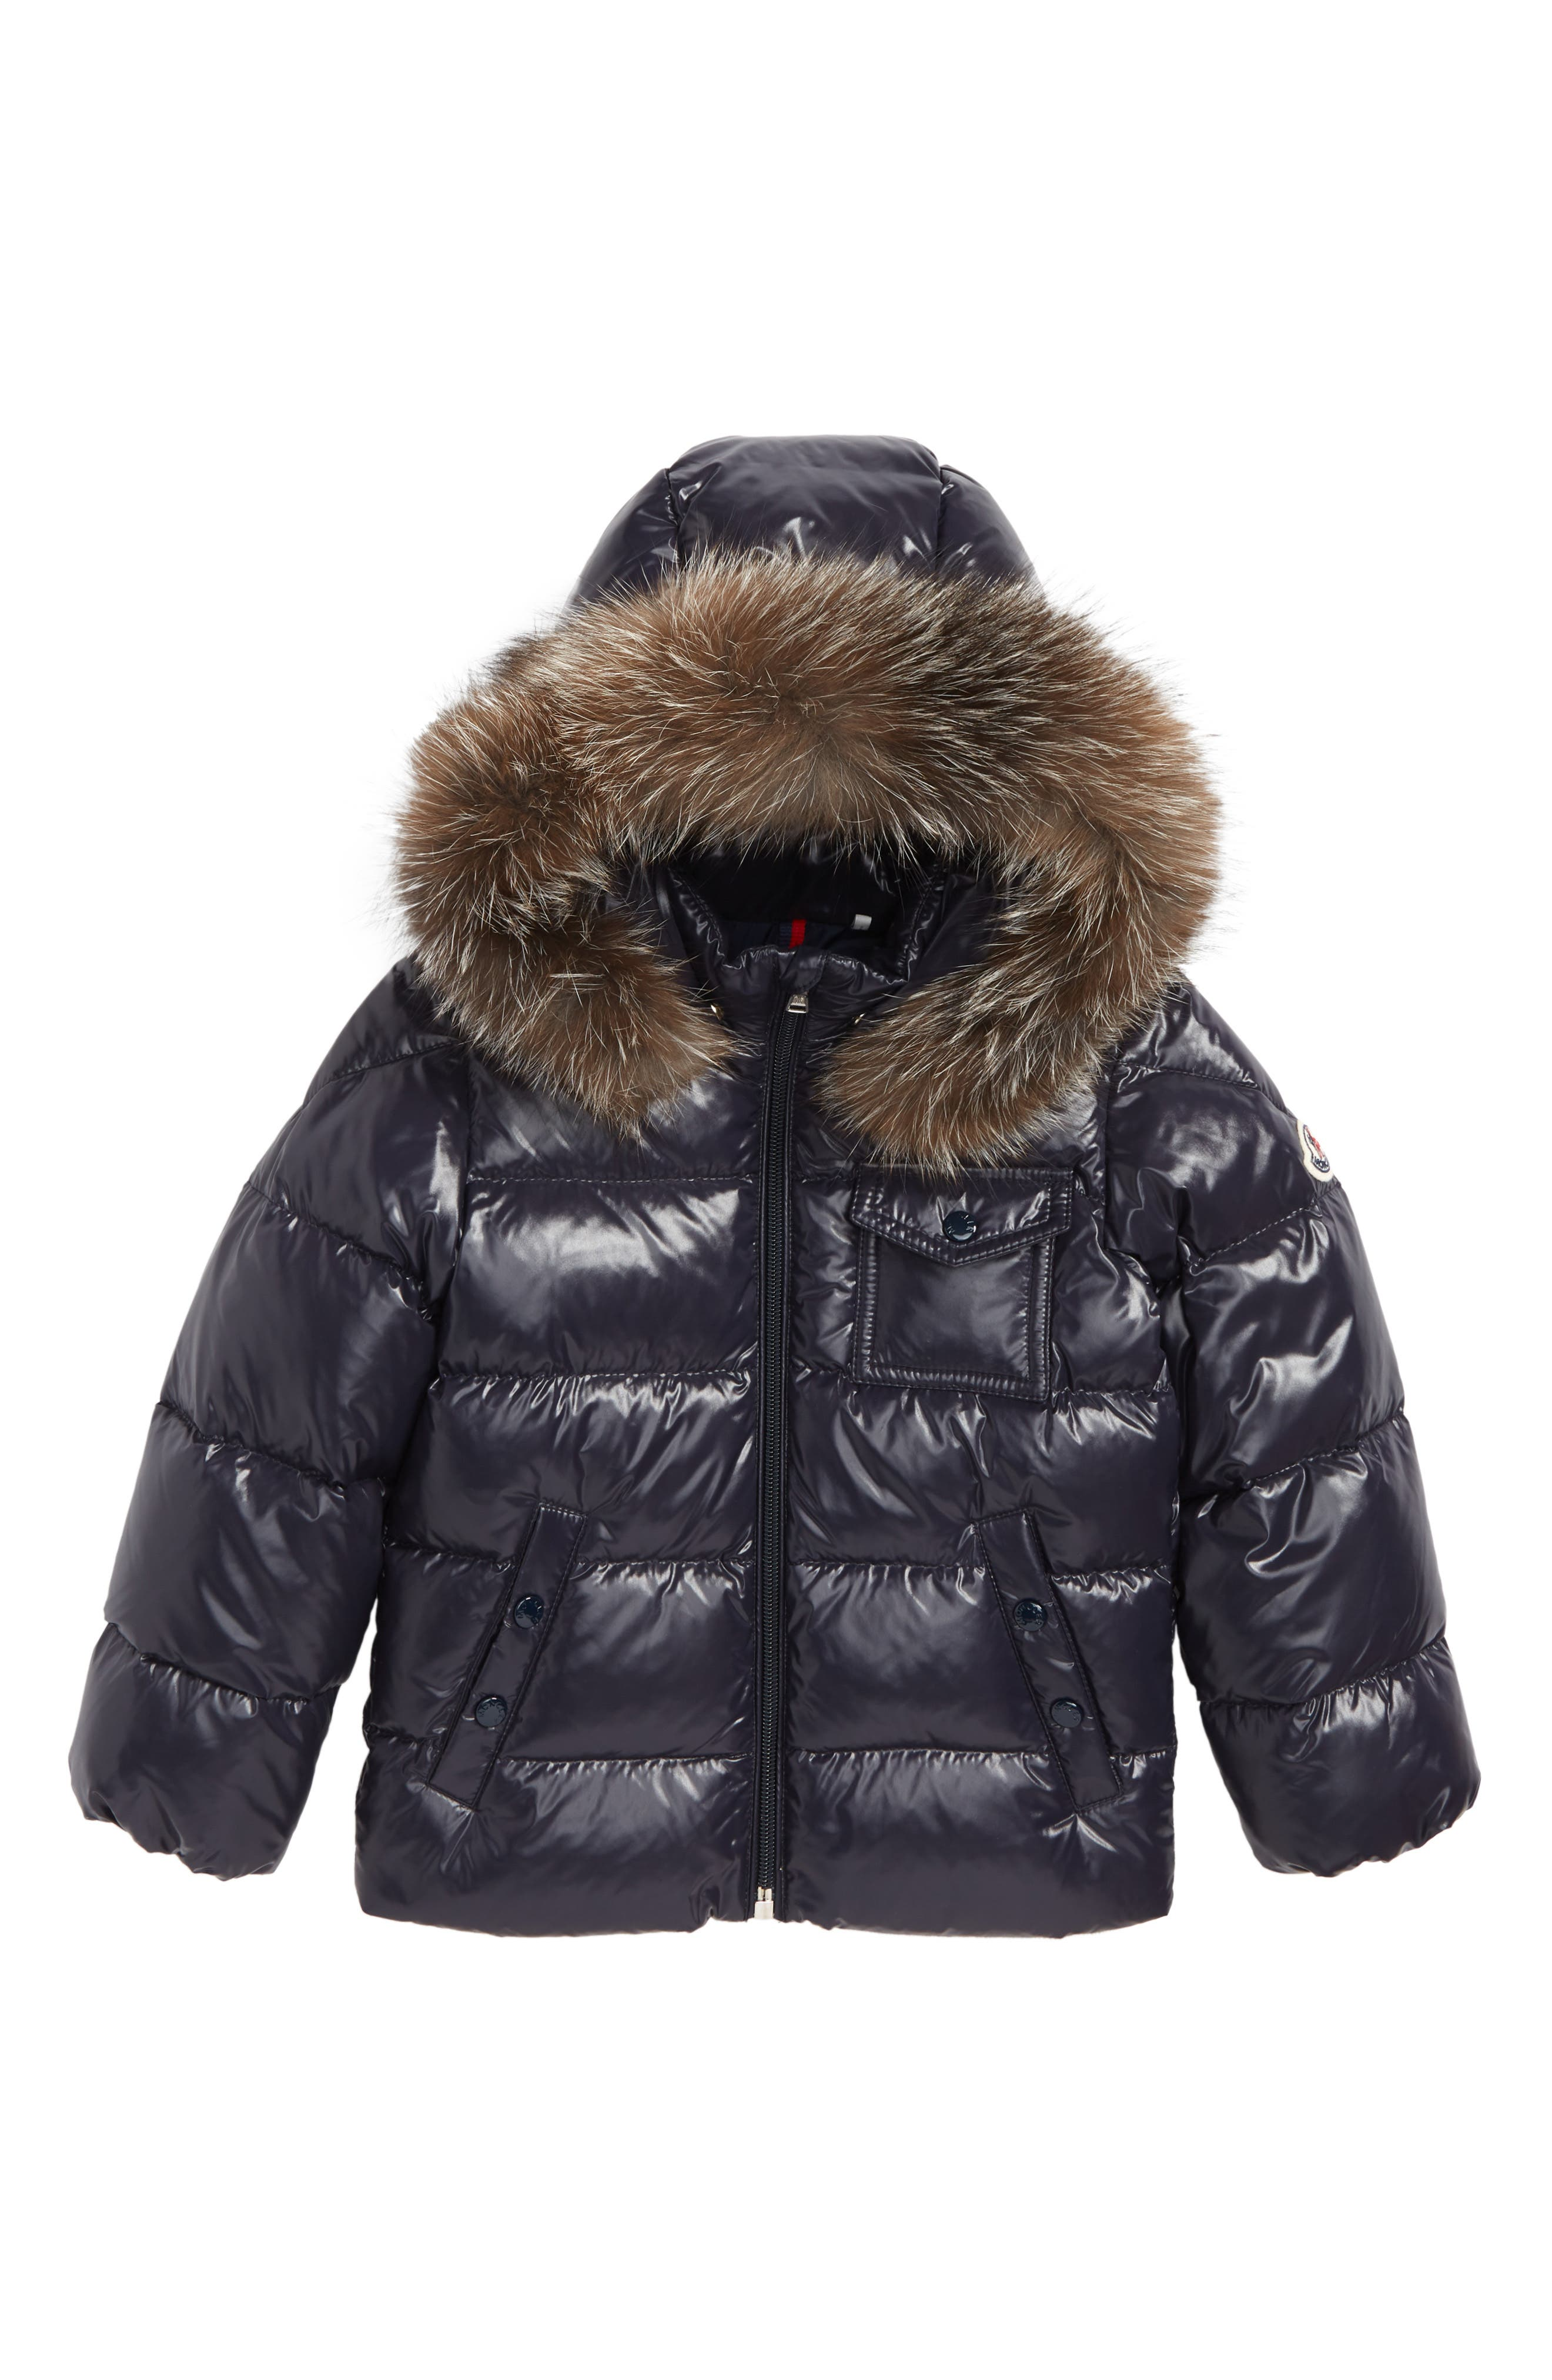 K2 Water Resistant Hooded Down Jacket with Genuine Fox Fur Trim,                             Main thumbnail 1, color,                             NAVY